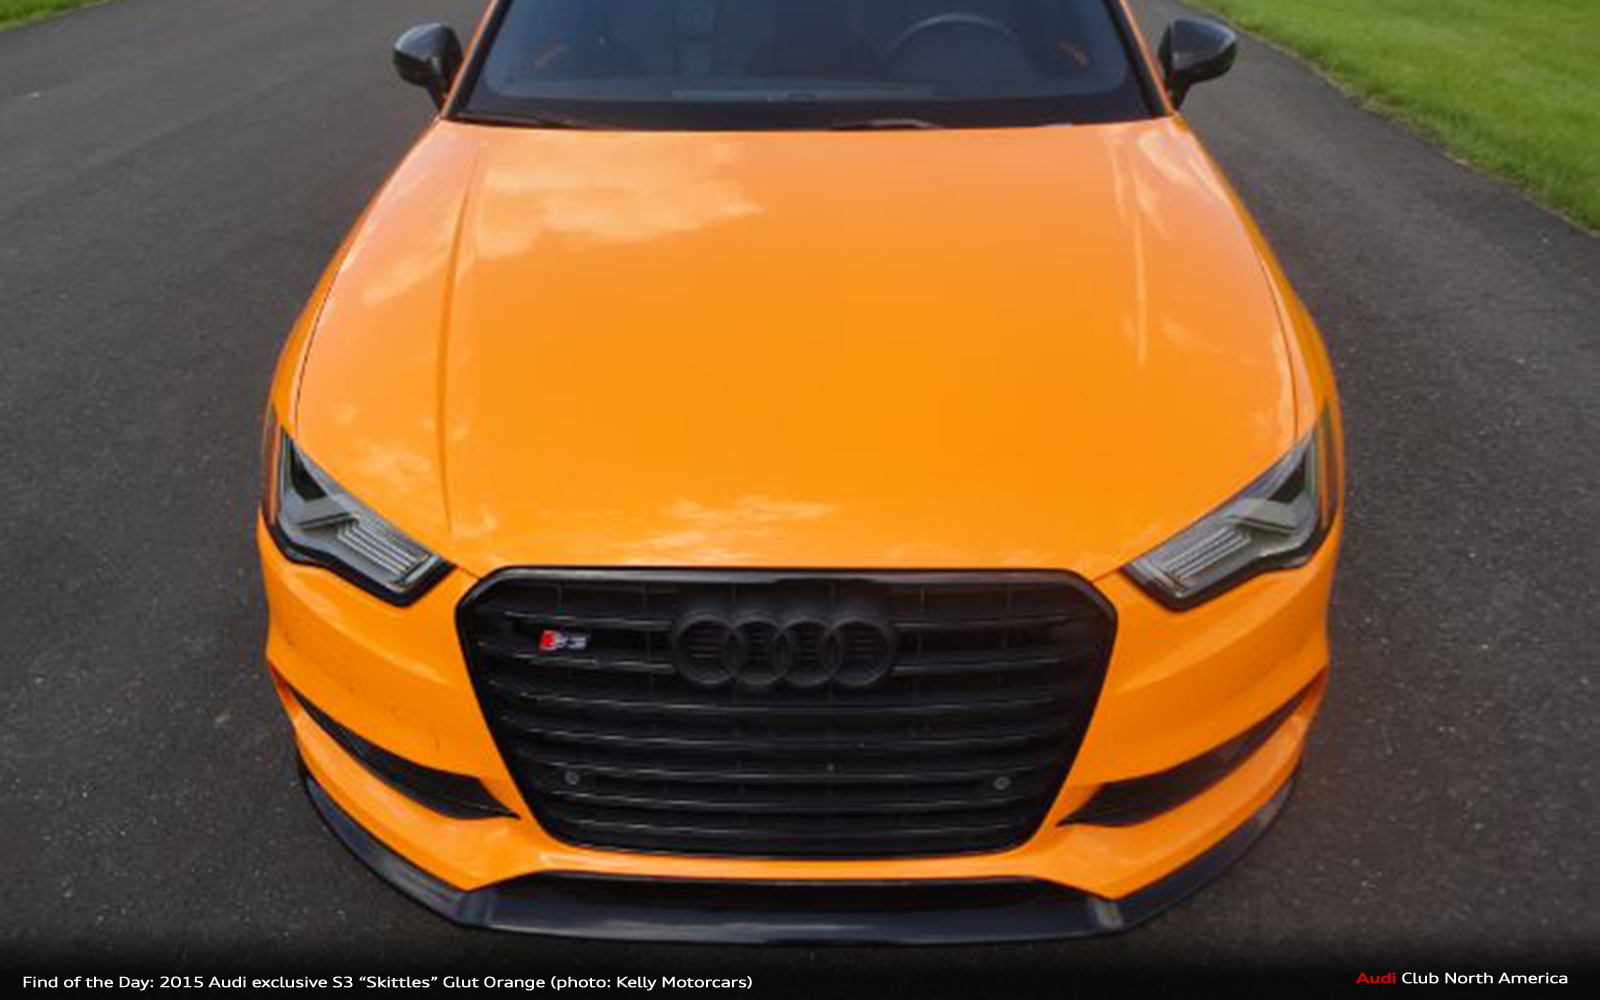 Find of the Day: 2015 Audi exclusive Glut Orange S3 'Skittles'